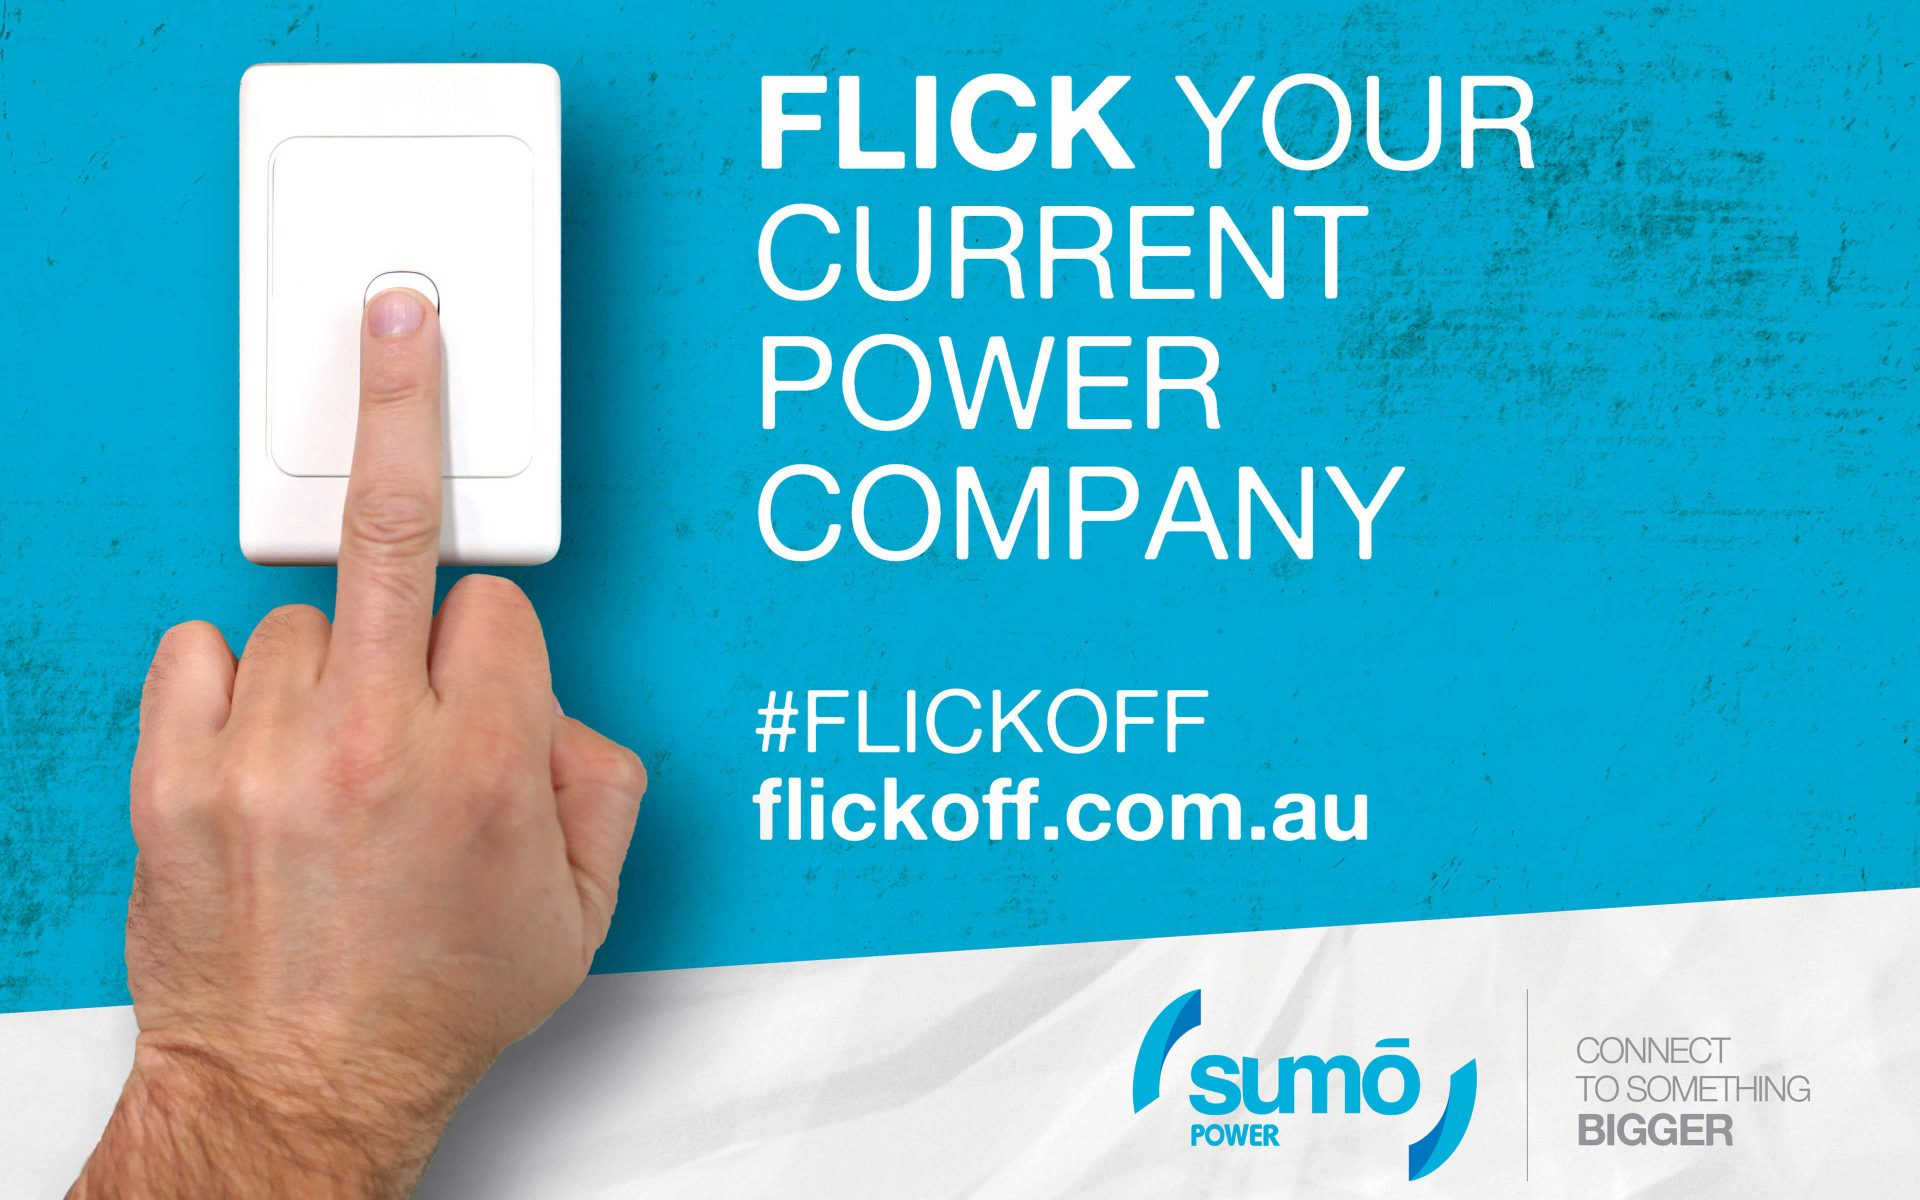 Sumo Power Flick Off outdoor campaign by Differ creative and Greenpoint media PR